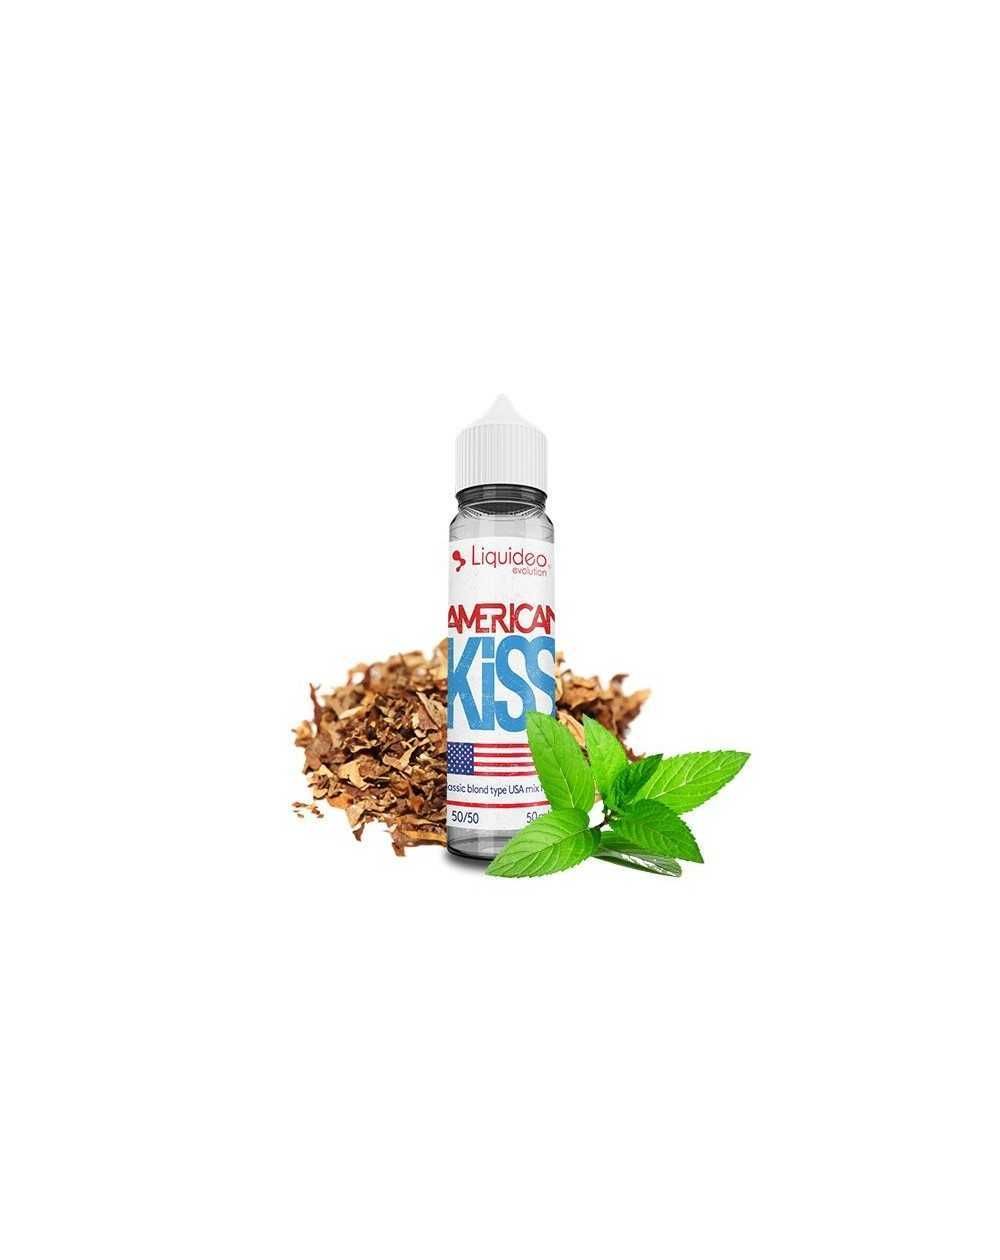 American Kiss 50ml - Liquideo-1